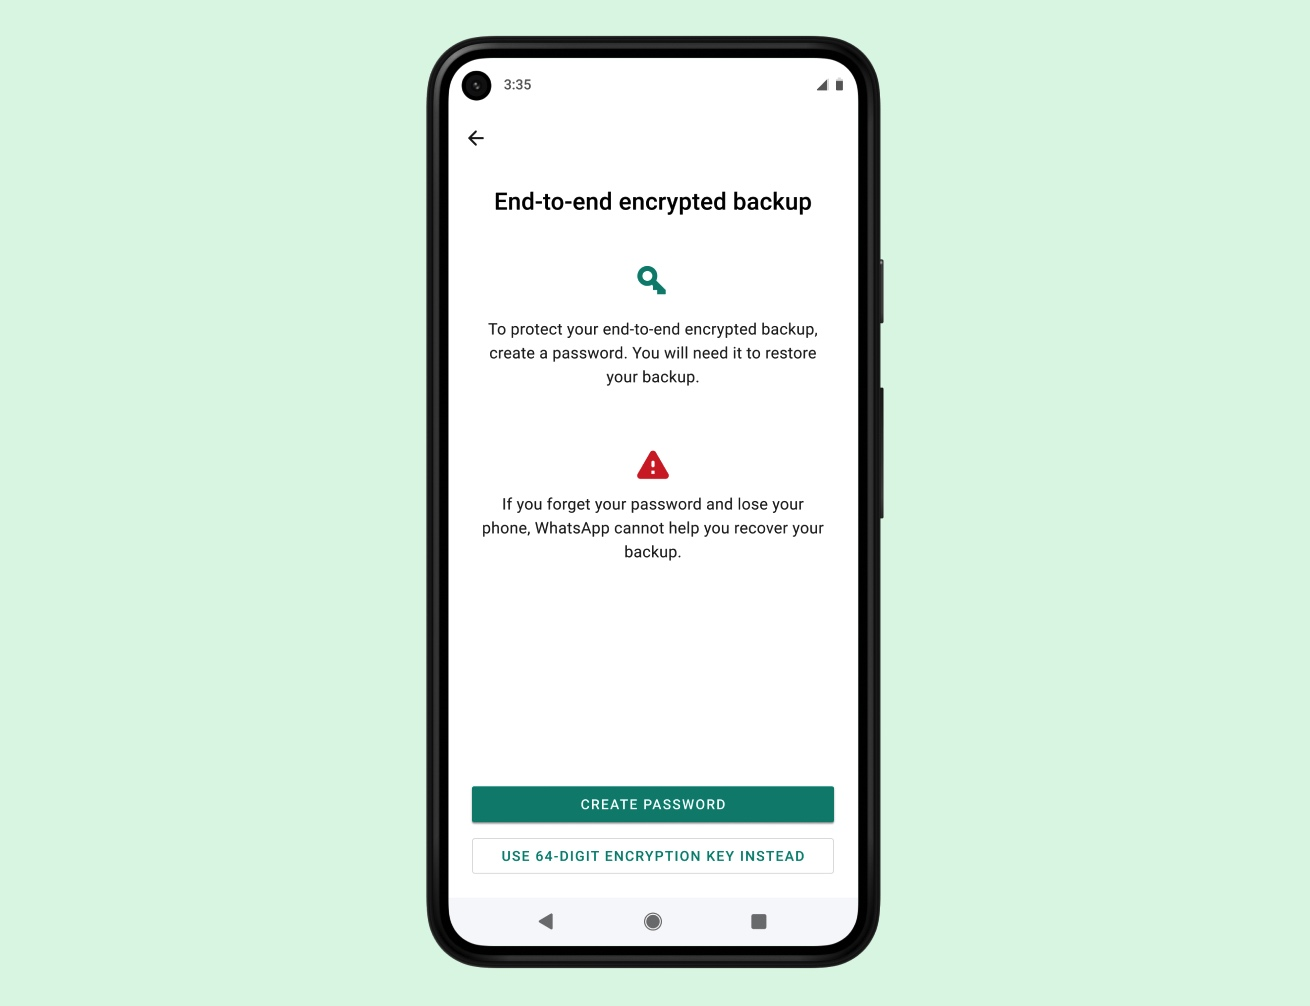 WhatsApp will finally let users encrypt their chat backups in the cloud